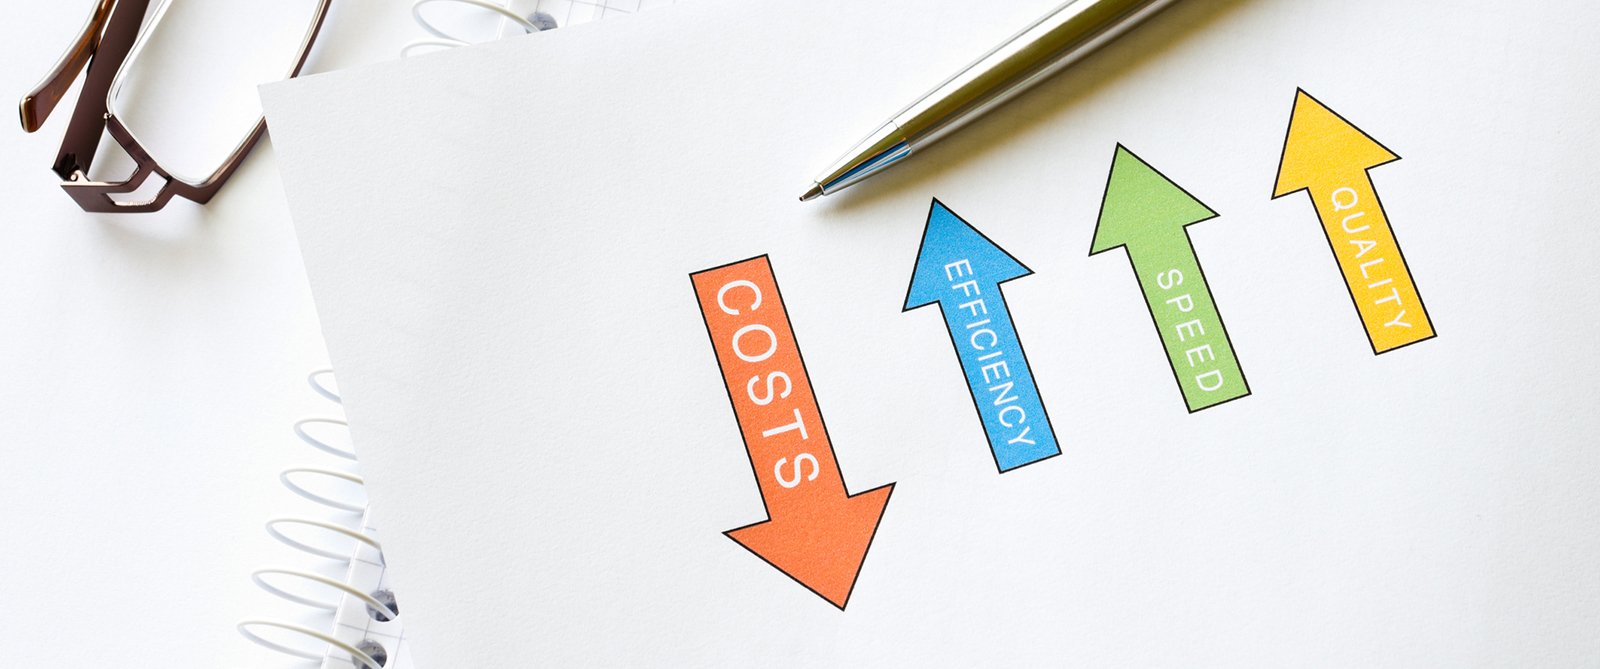 Which are the top Advantages or Benefits of Outsourcing Payroll?